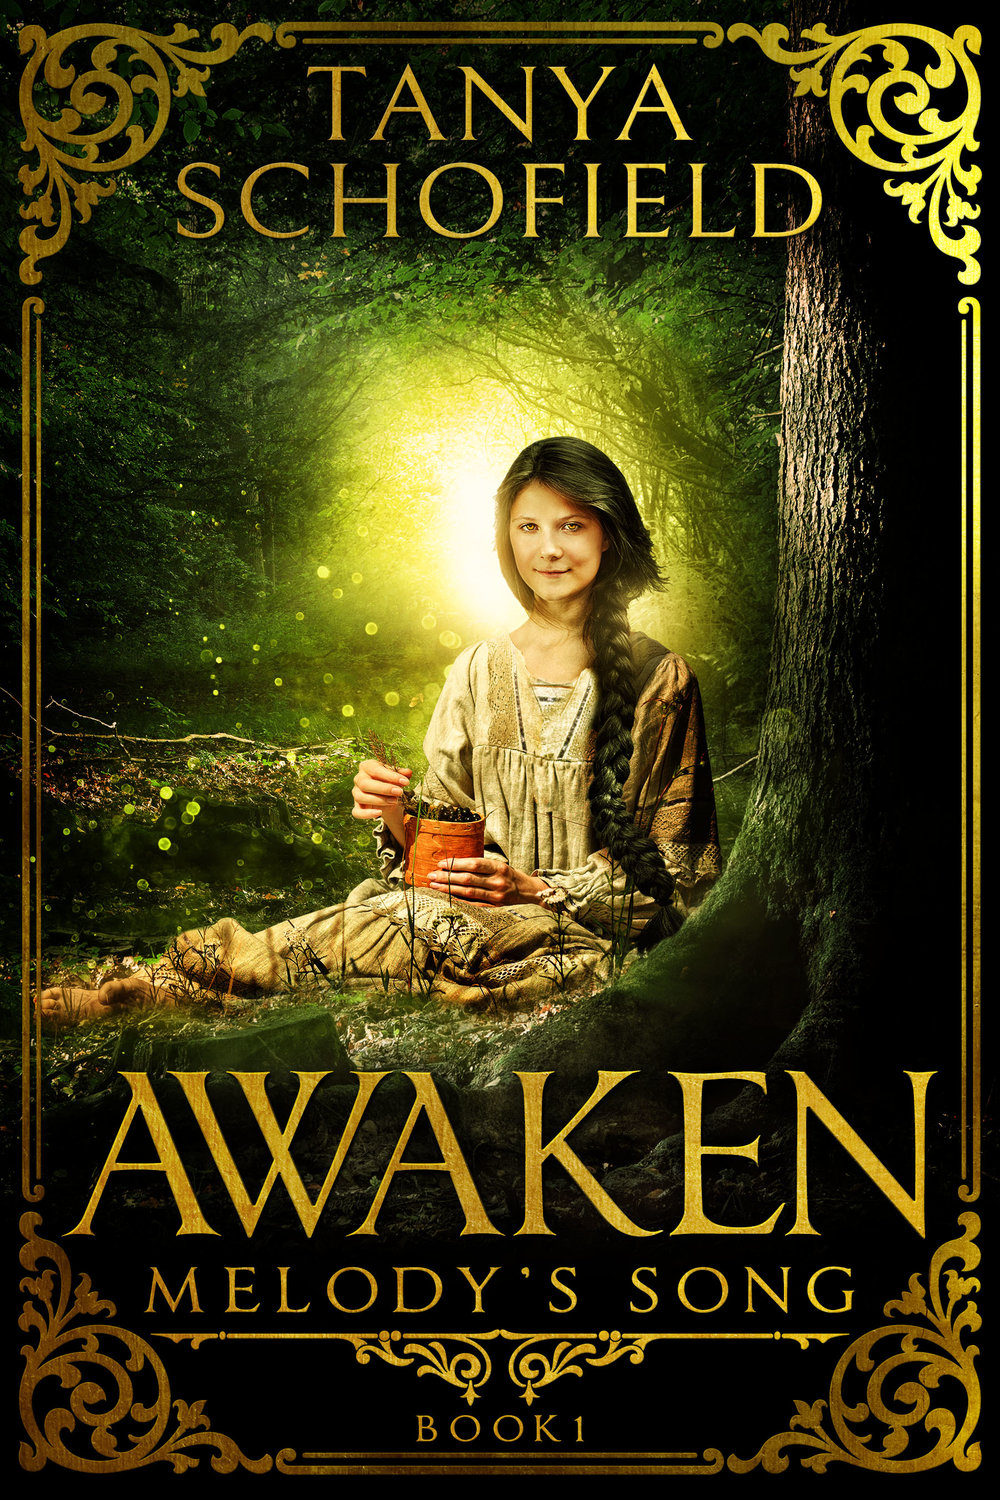 Awaken - Melody's Song Book 1.jpg